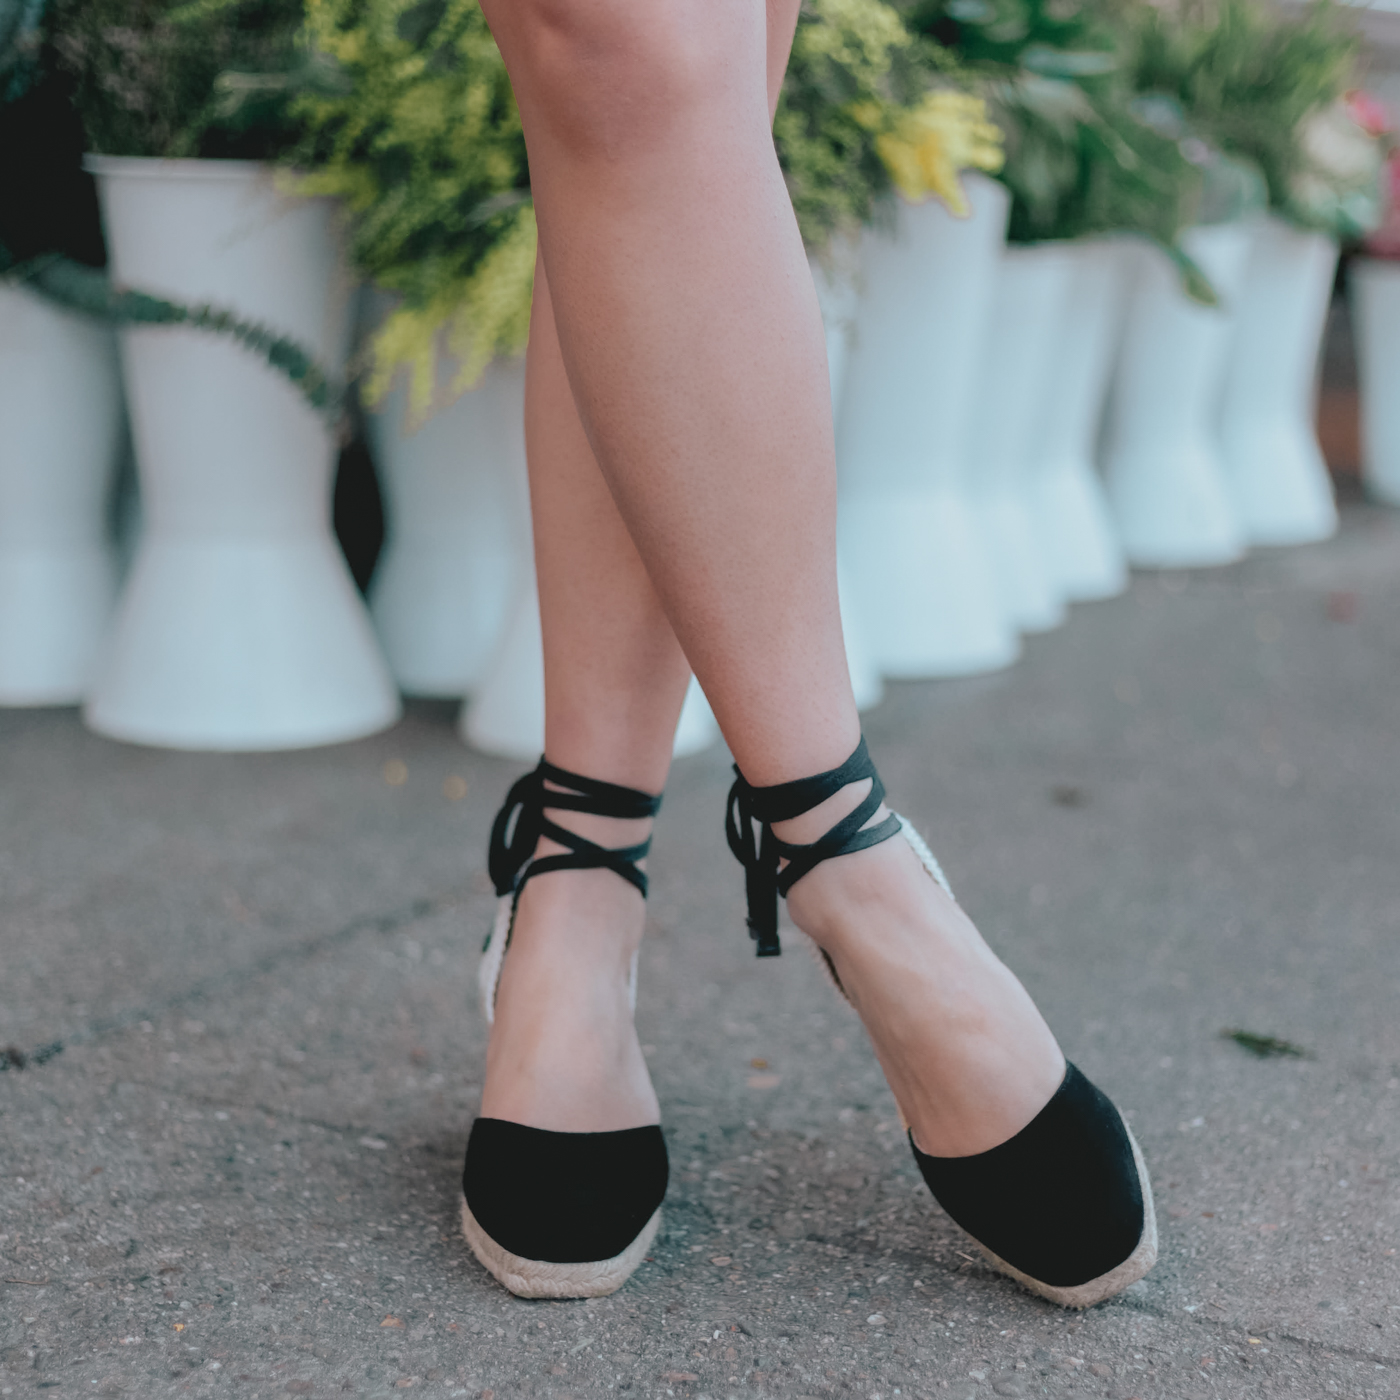 Reformation     •  Romy Wedge Espadrille    Cost:  $110 (on sale)  Times Worn as of 3/2019:  2     Cost/Times Worn:  $55  Cost/30 Wears:  $3.67